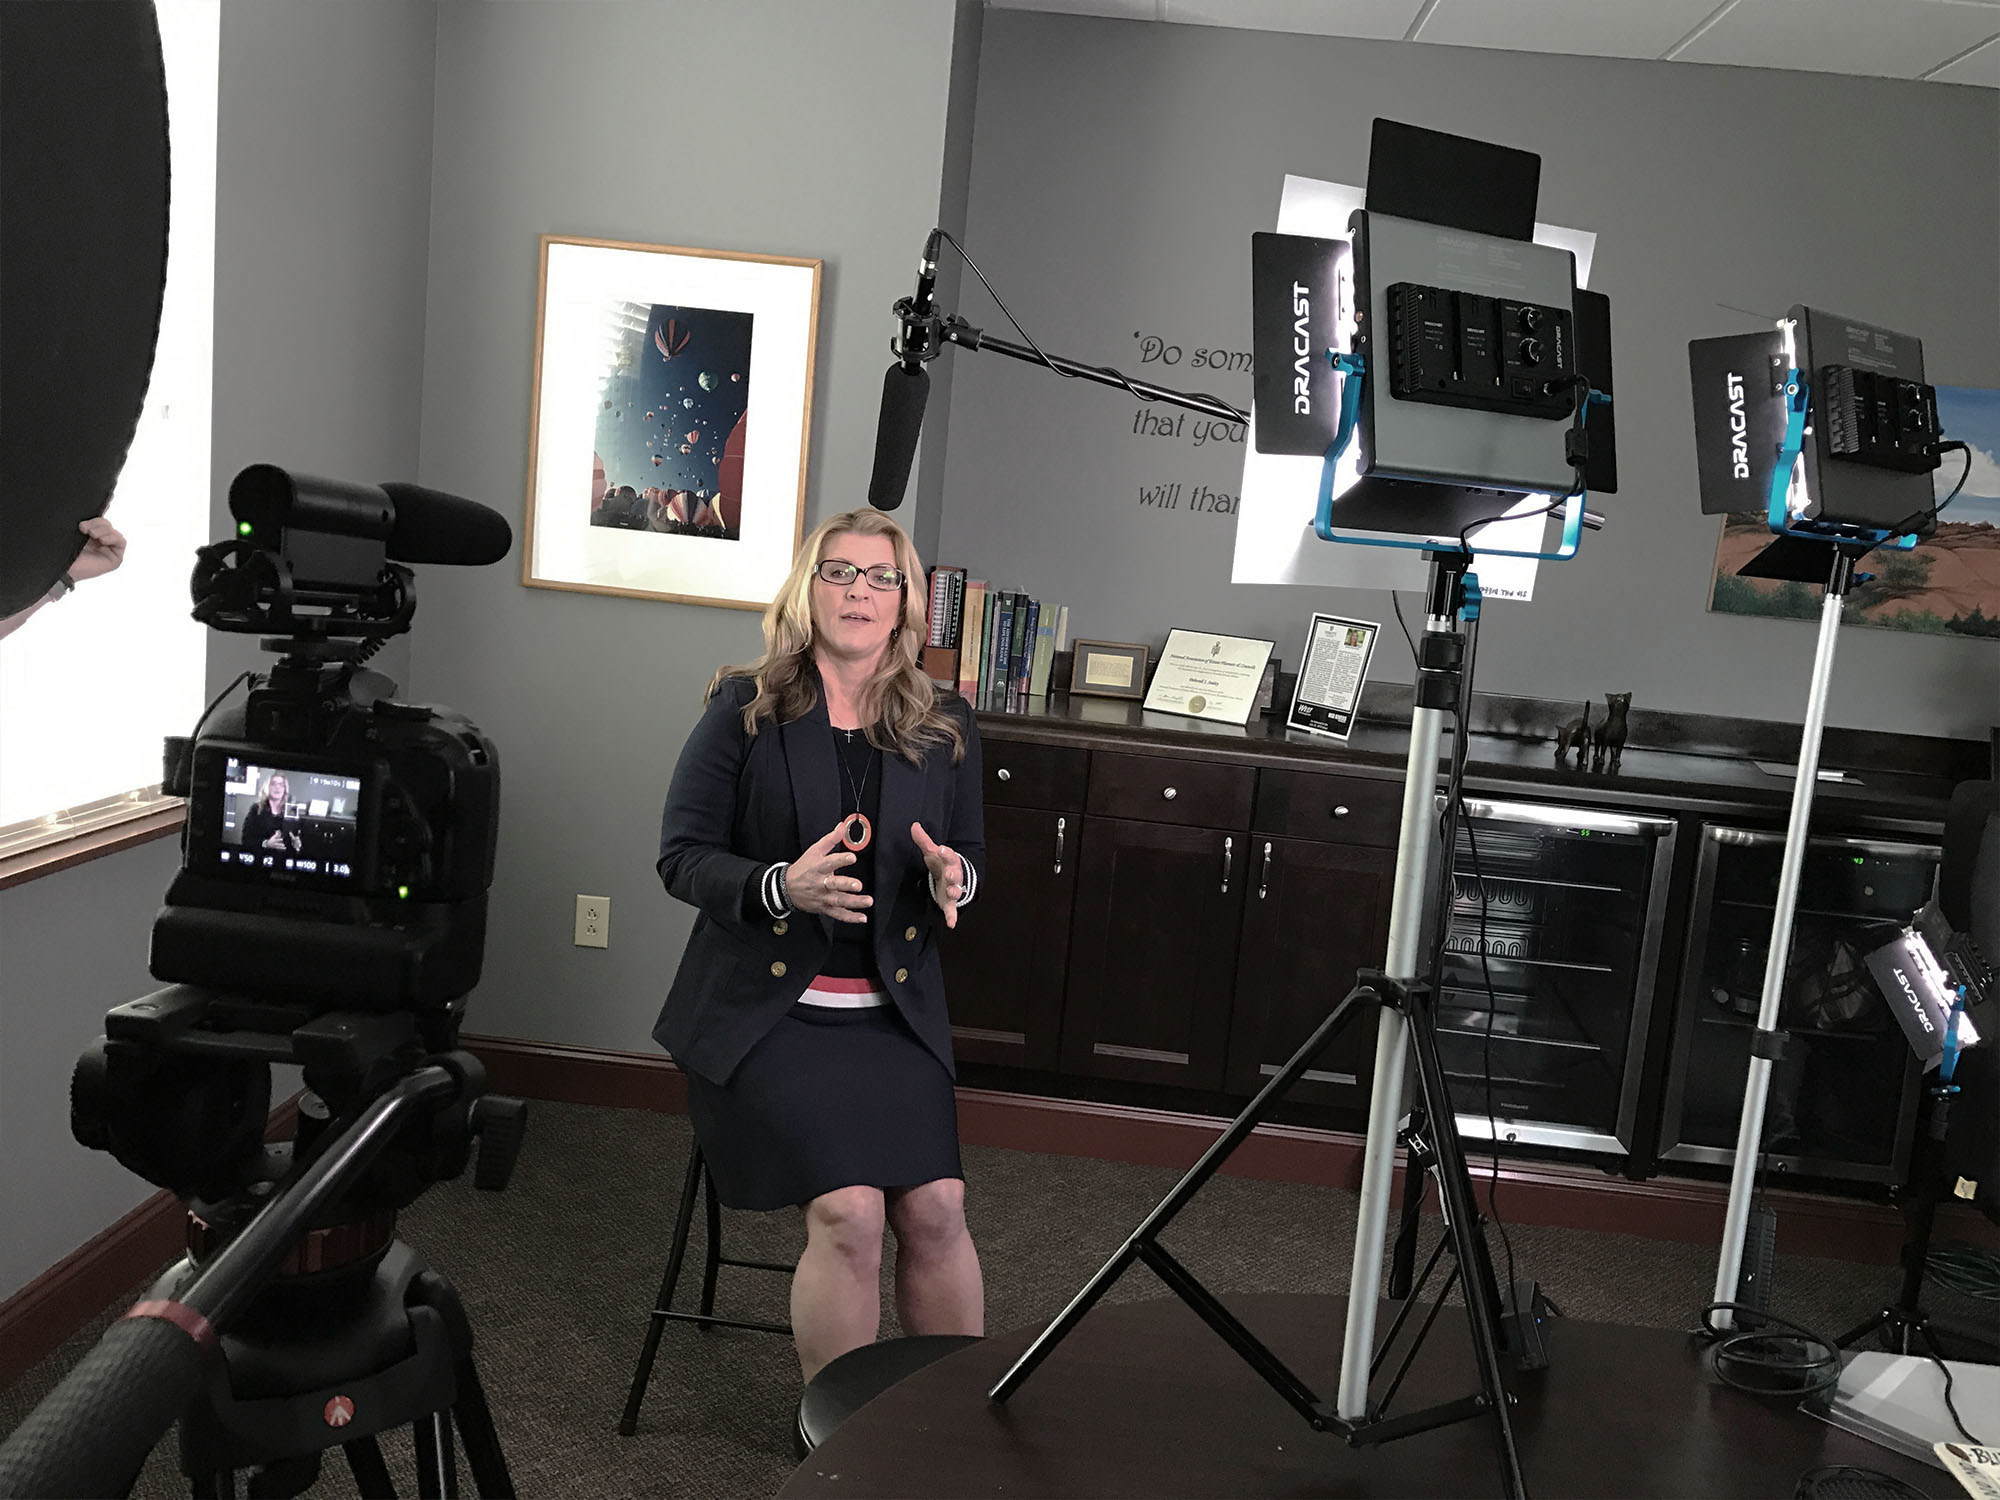 5 Talking Points For Your Law Firm Video